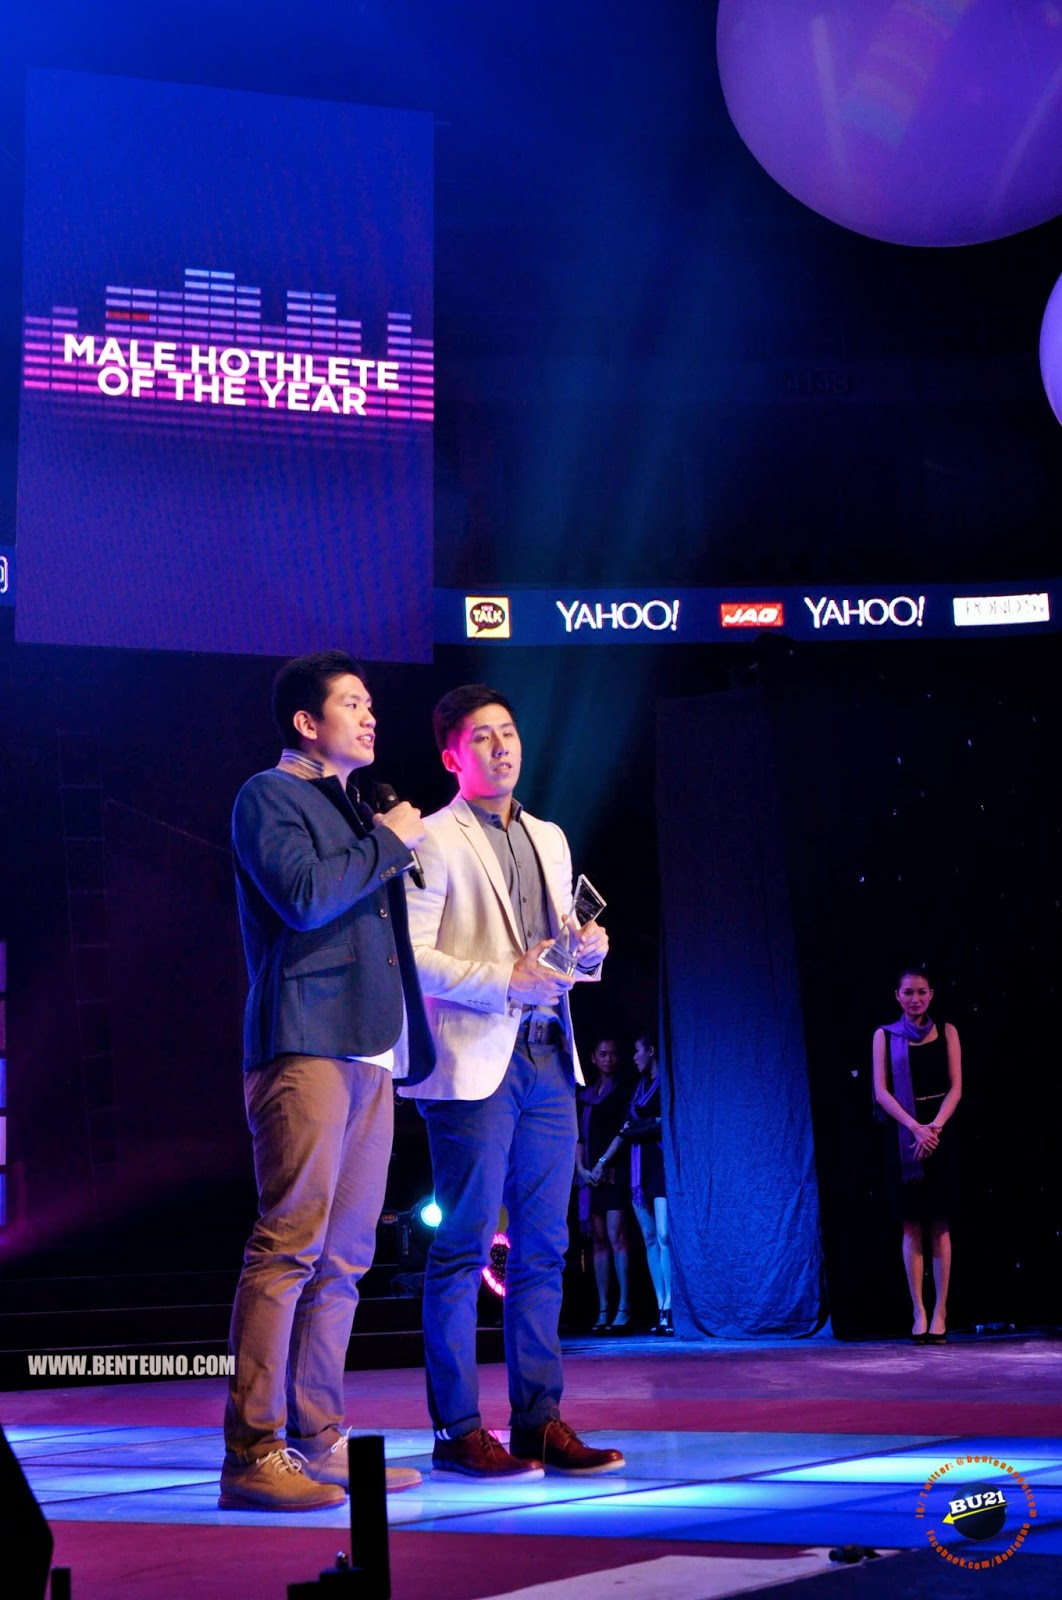 Jeric Teng and Jeron Teng, Male Hothlete of the Year at Yahoo Celebrity Awards 2014